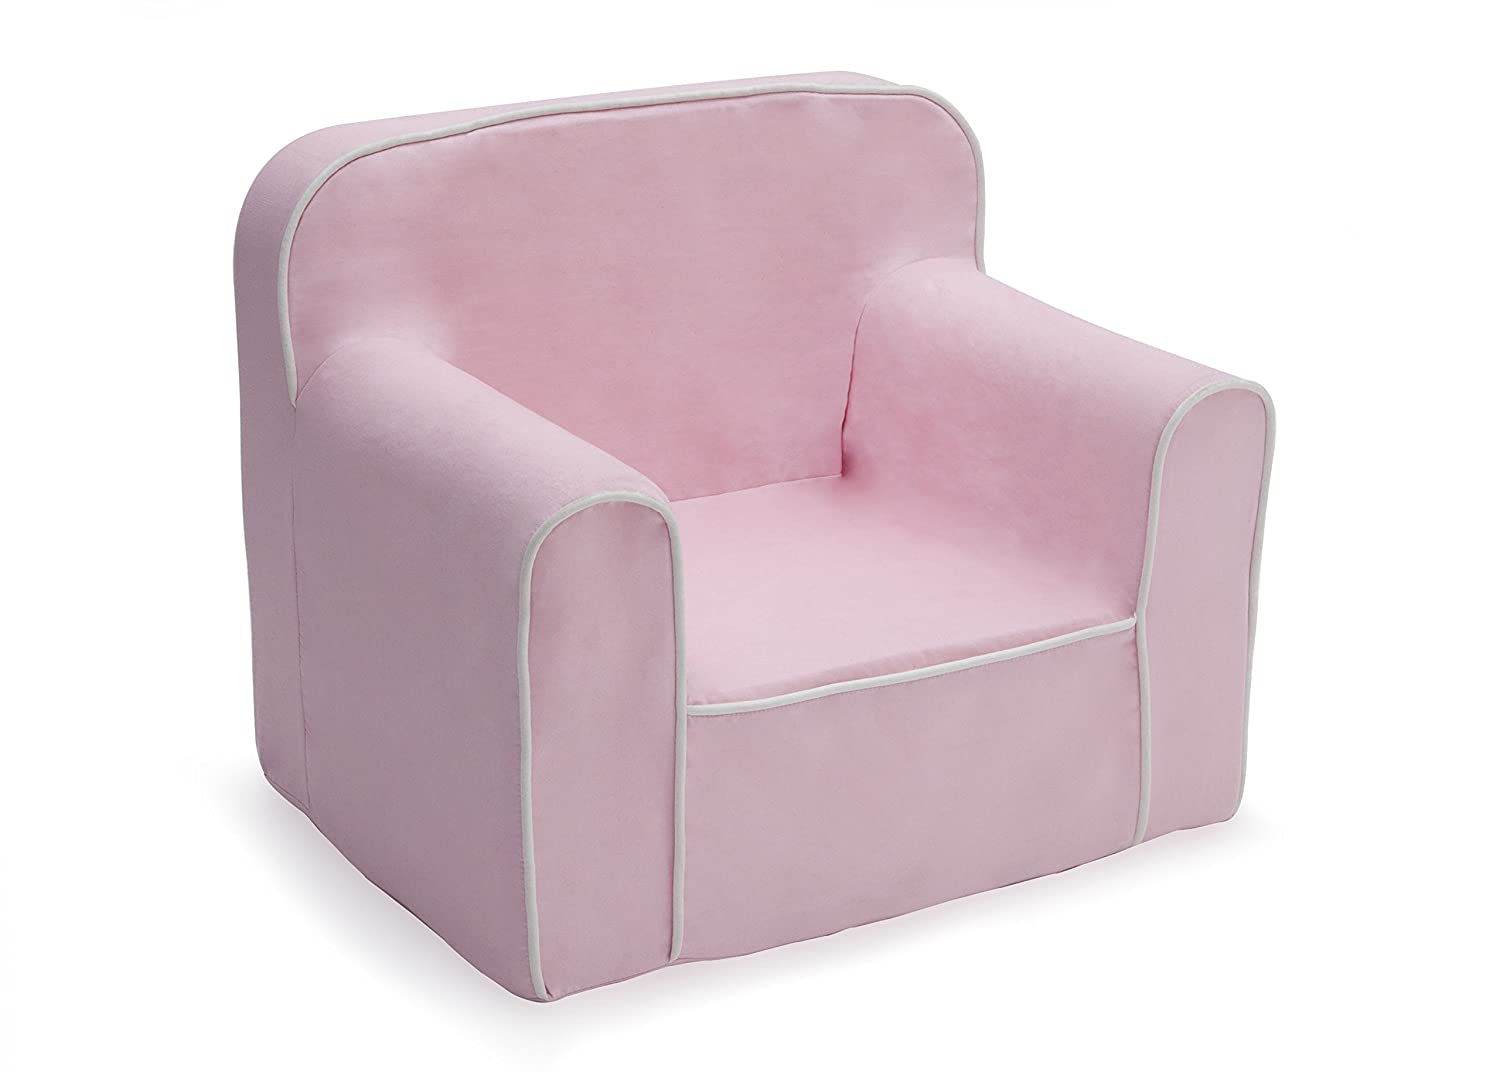 Delta Children Foam Snuggle Chair, Pink with White